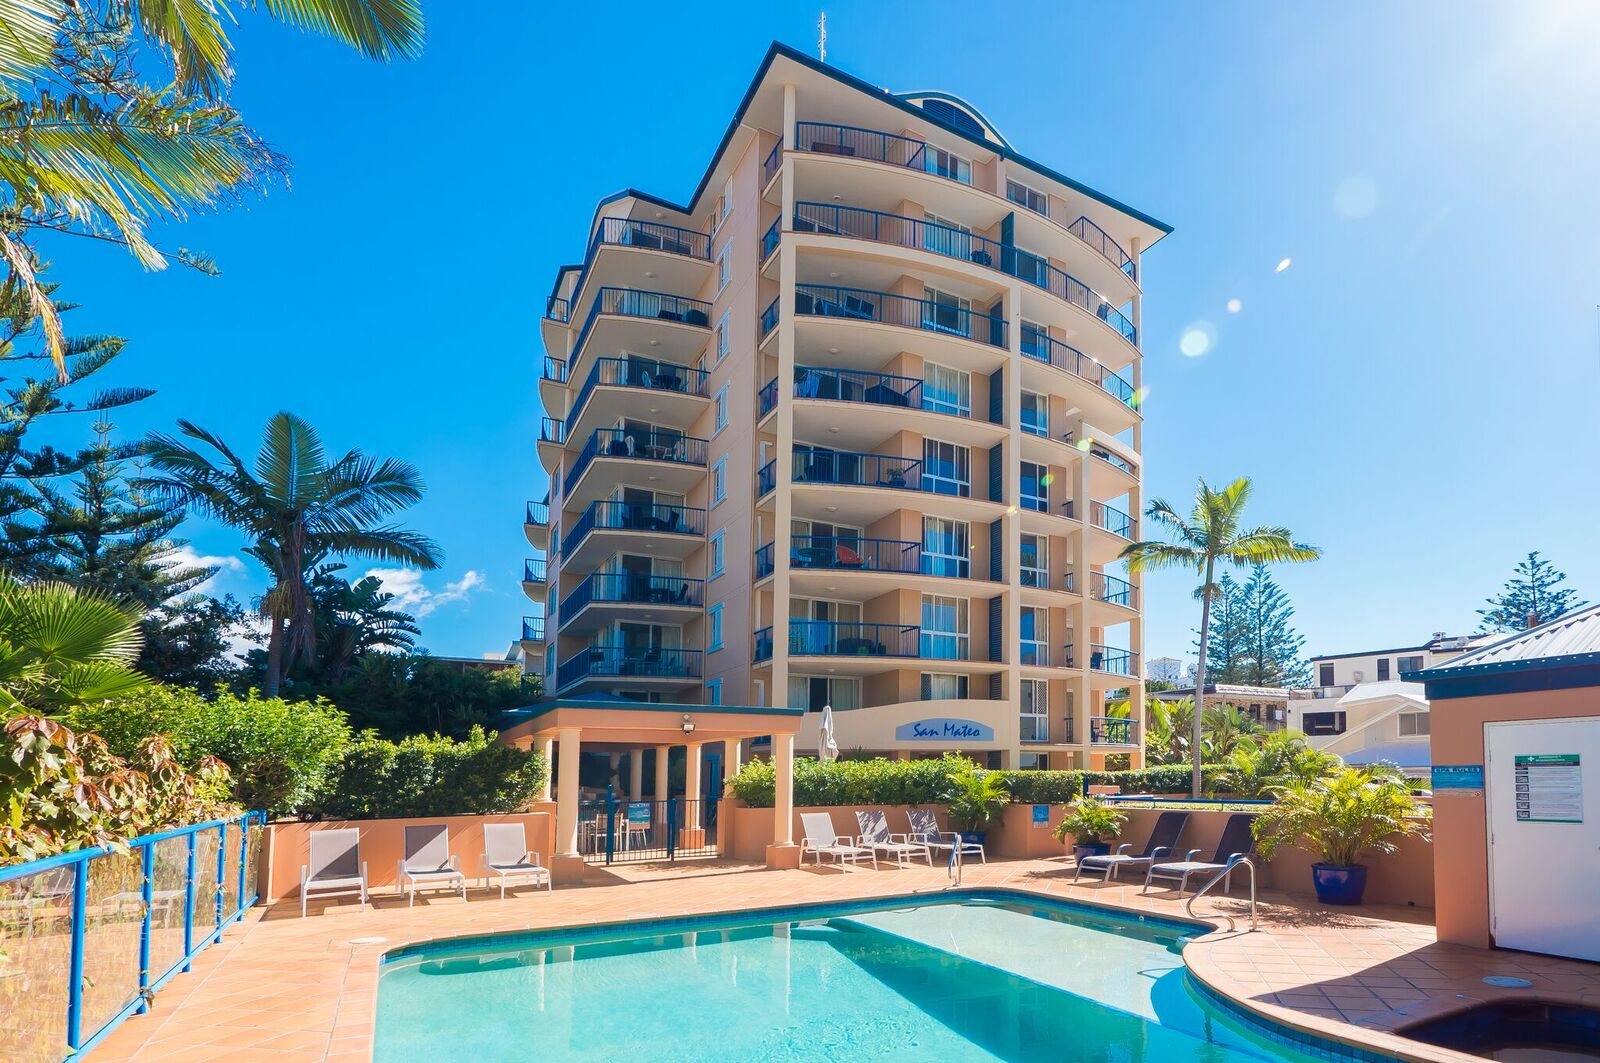 San Mateo on Broadbeach - Stayed